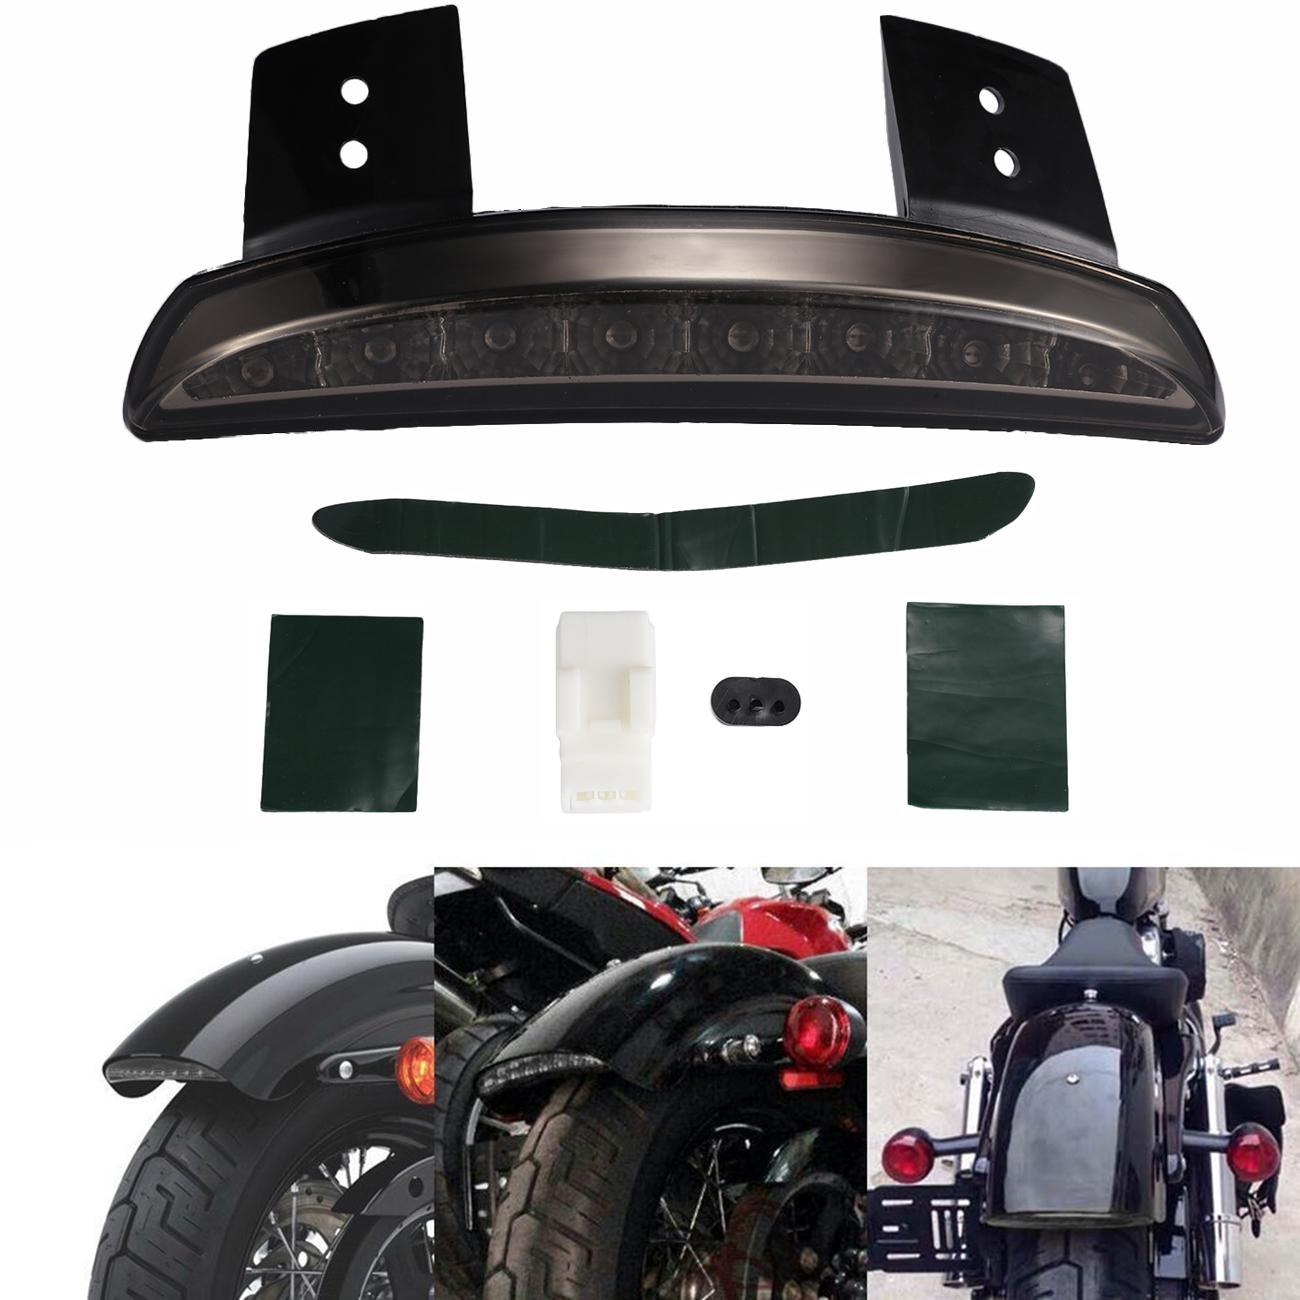 Fender Edge Led License Plate Tail Light Turn For Harley 2014 Xl1200v Wiring Diagram Product Display